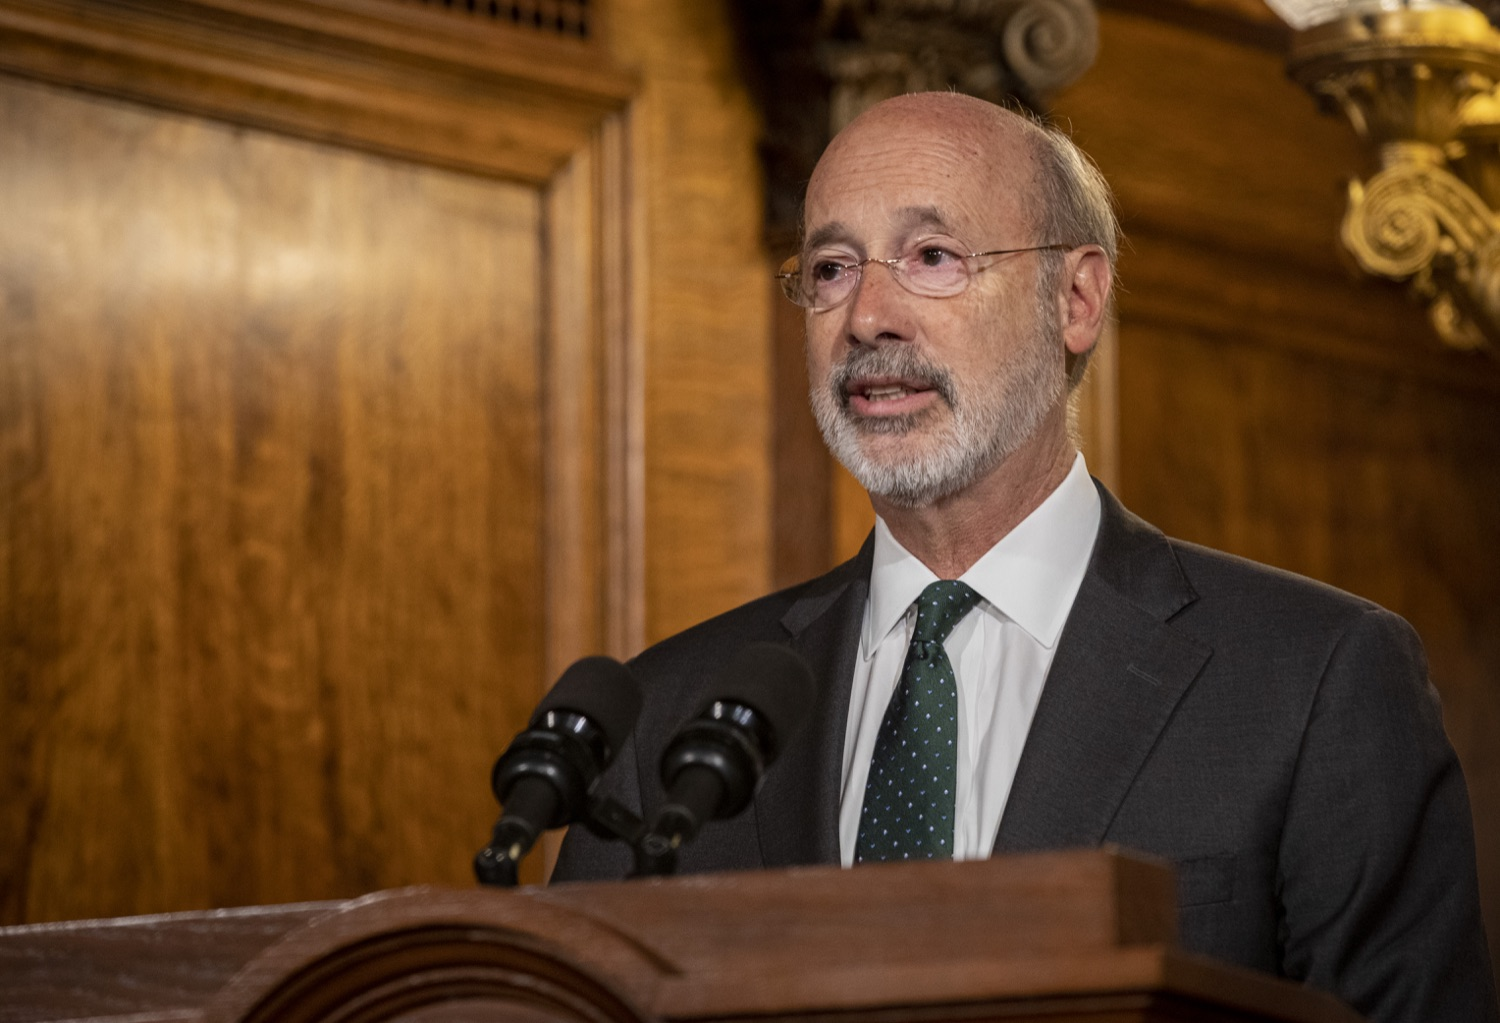 """<a href=""""http://filesource.abacast.com/commonwealthofpa/photo/17469_GOV_ClimateChange_DE_007.jpg"""" target=""""_blank"""">⇣Download Photo<br></a>Governor Wolf Takes Executive Action to Combat Climate Change, Carbon Emissions"""